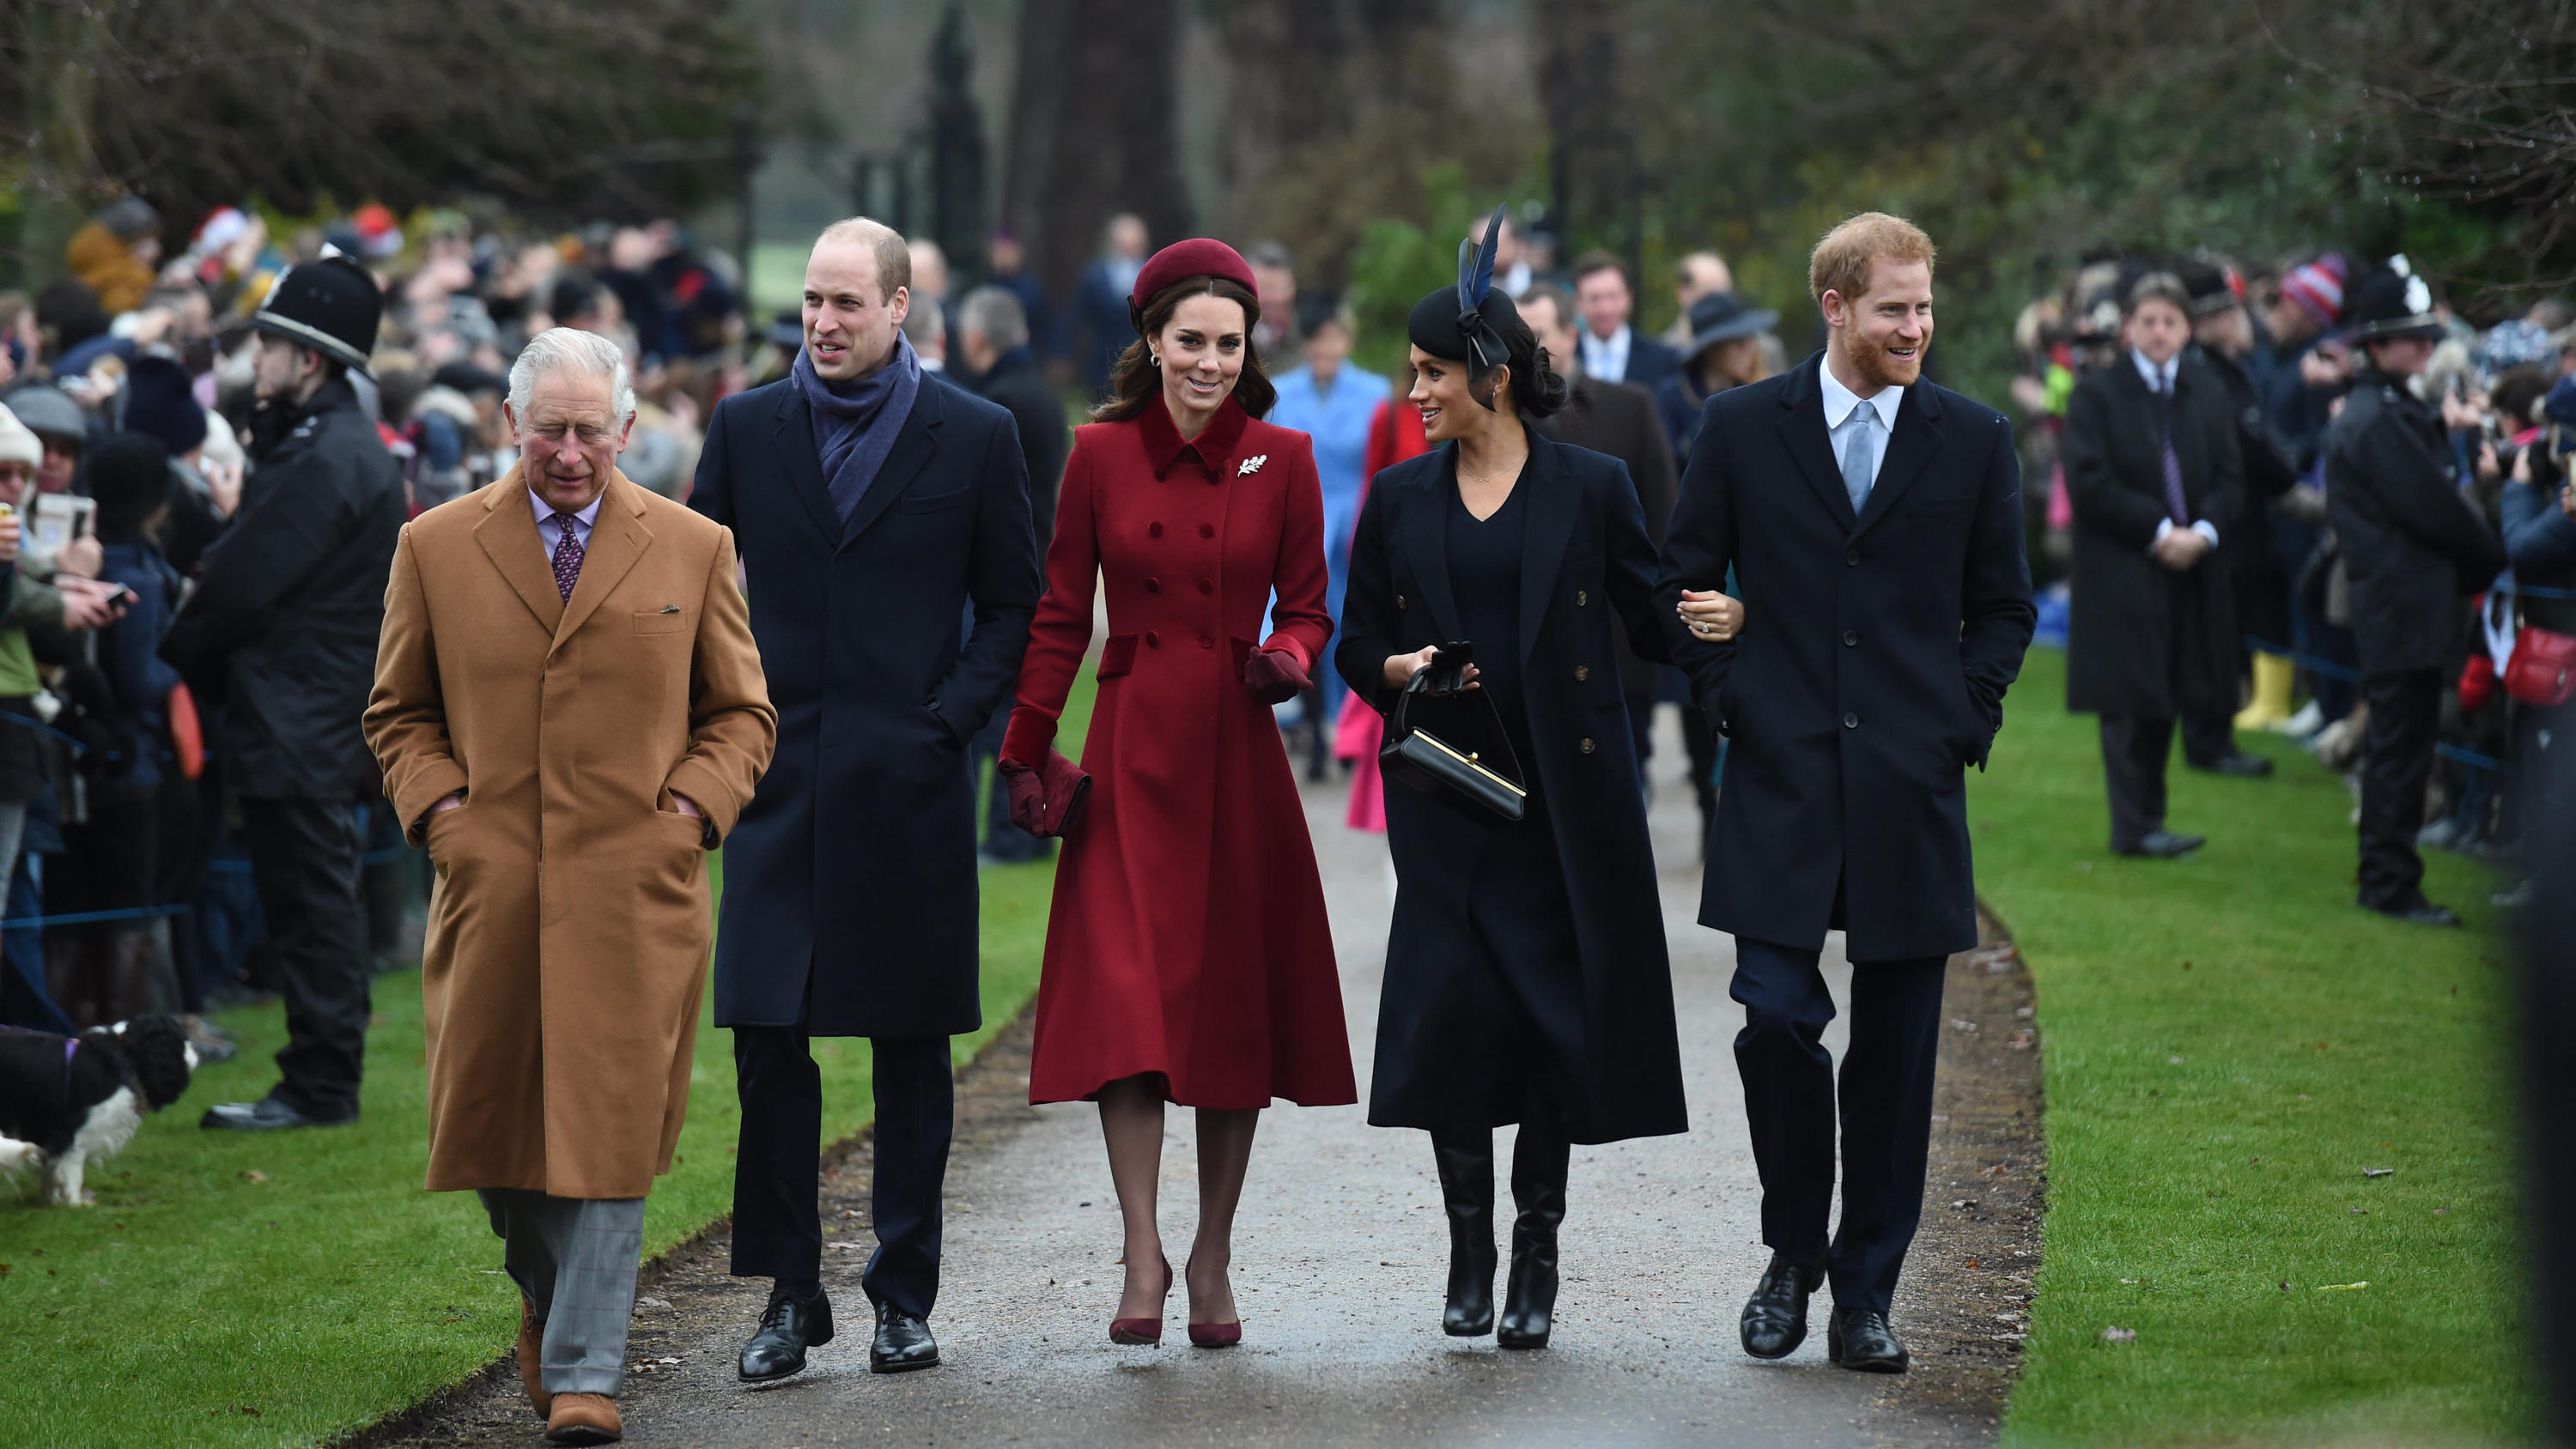 Prinz Charles, Prinz William, Kate, Herzogin von Cambridge, Meghan, Herzogin von Sussex und Prinz Harry